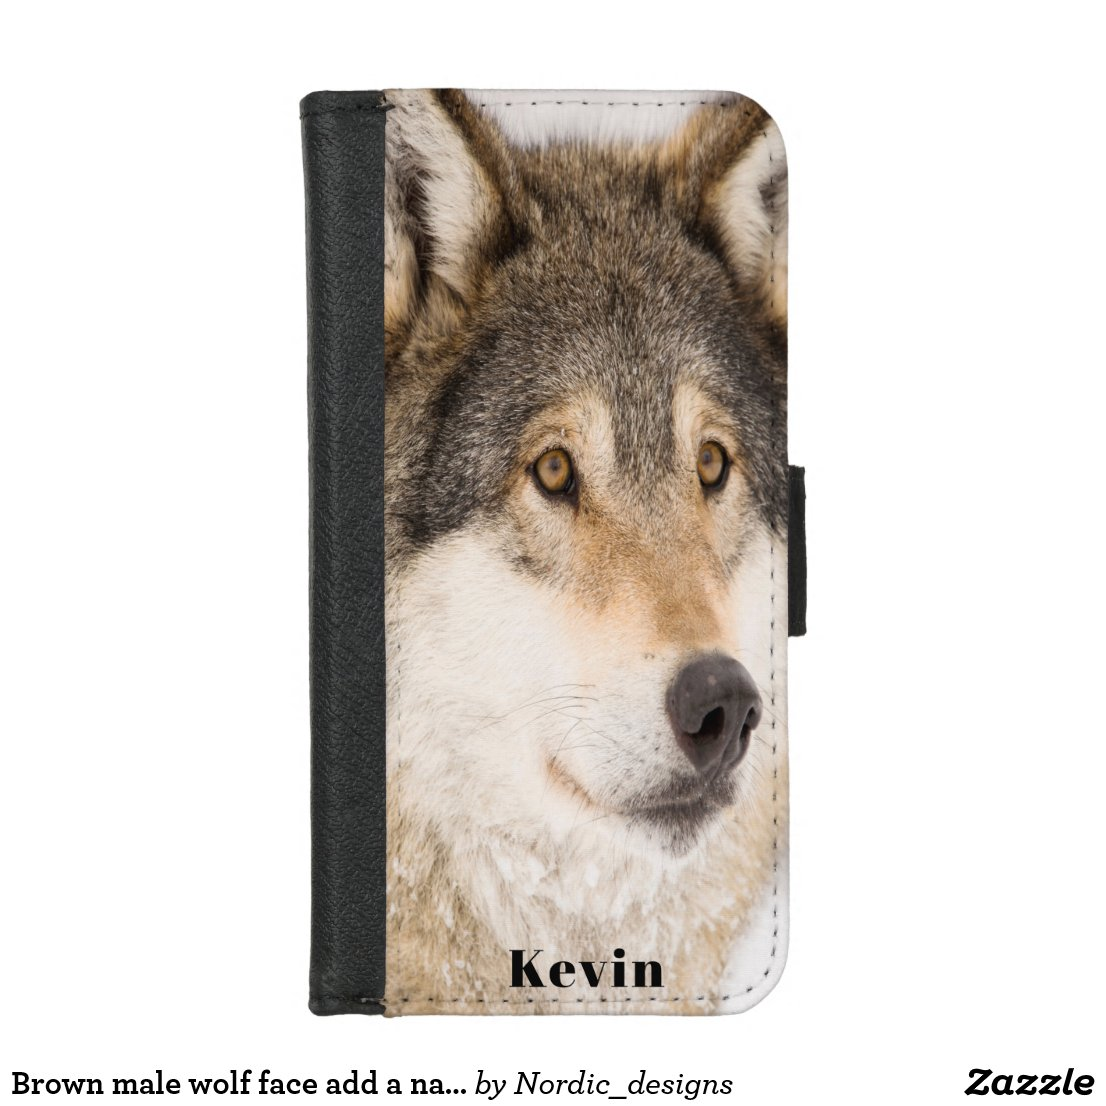 Brown male wolf face add a name iPhone 8/7 wallet case